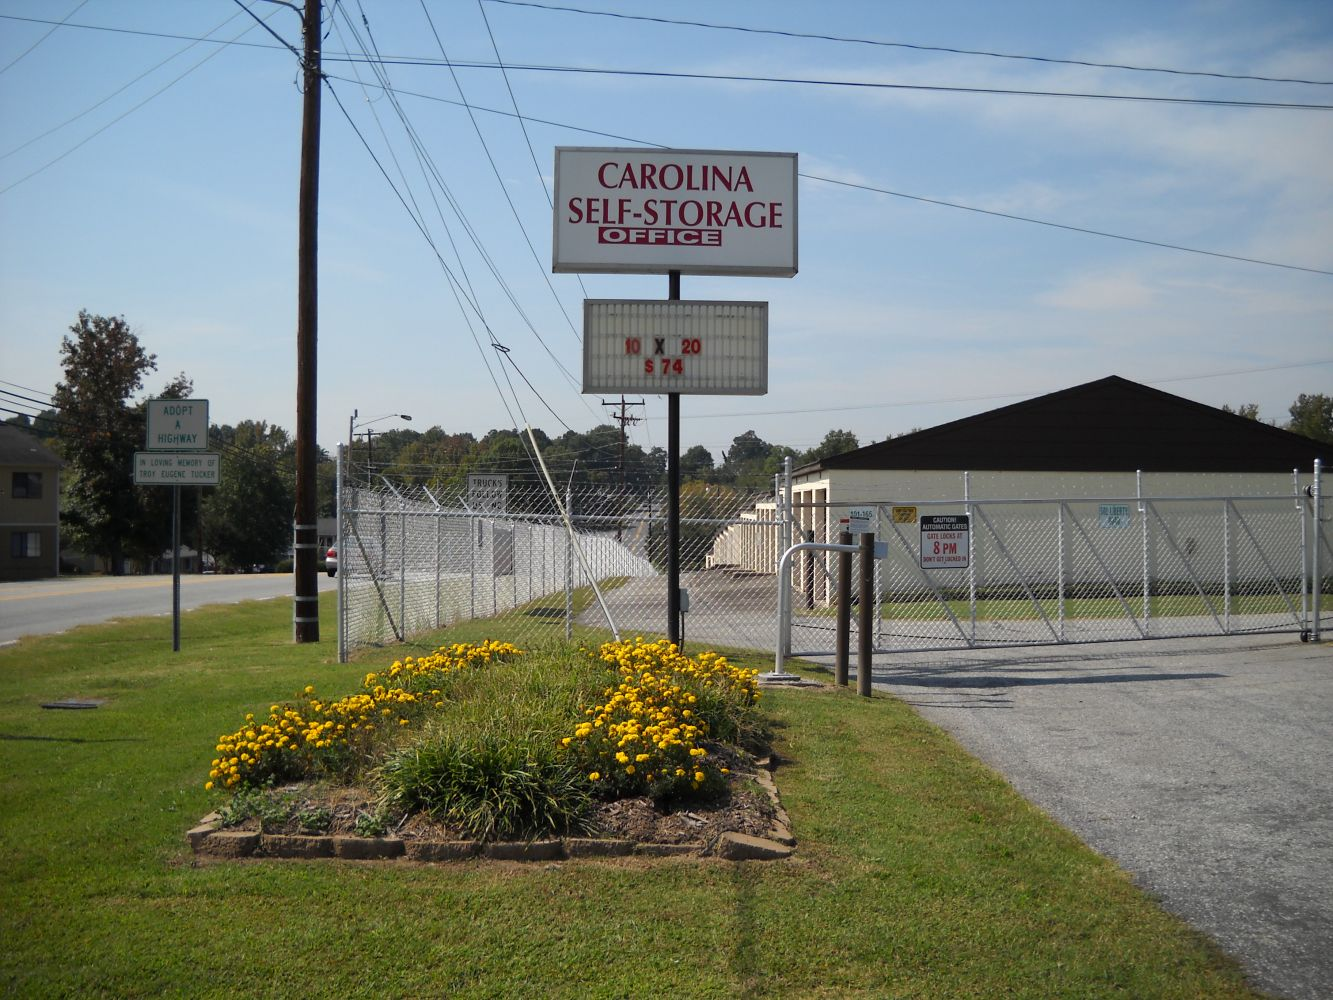 Secure self-storage units for High point, NC resident at Carolina Self Storage's Archdale location